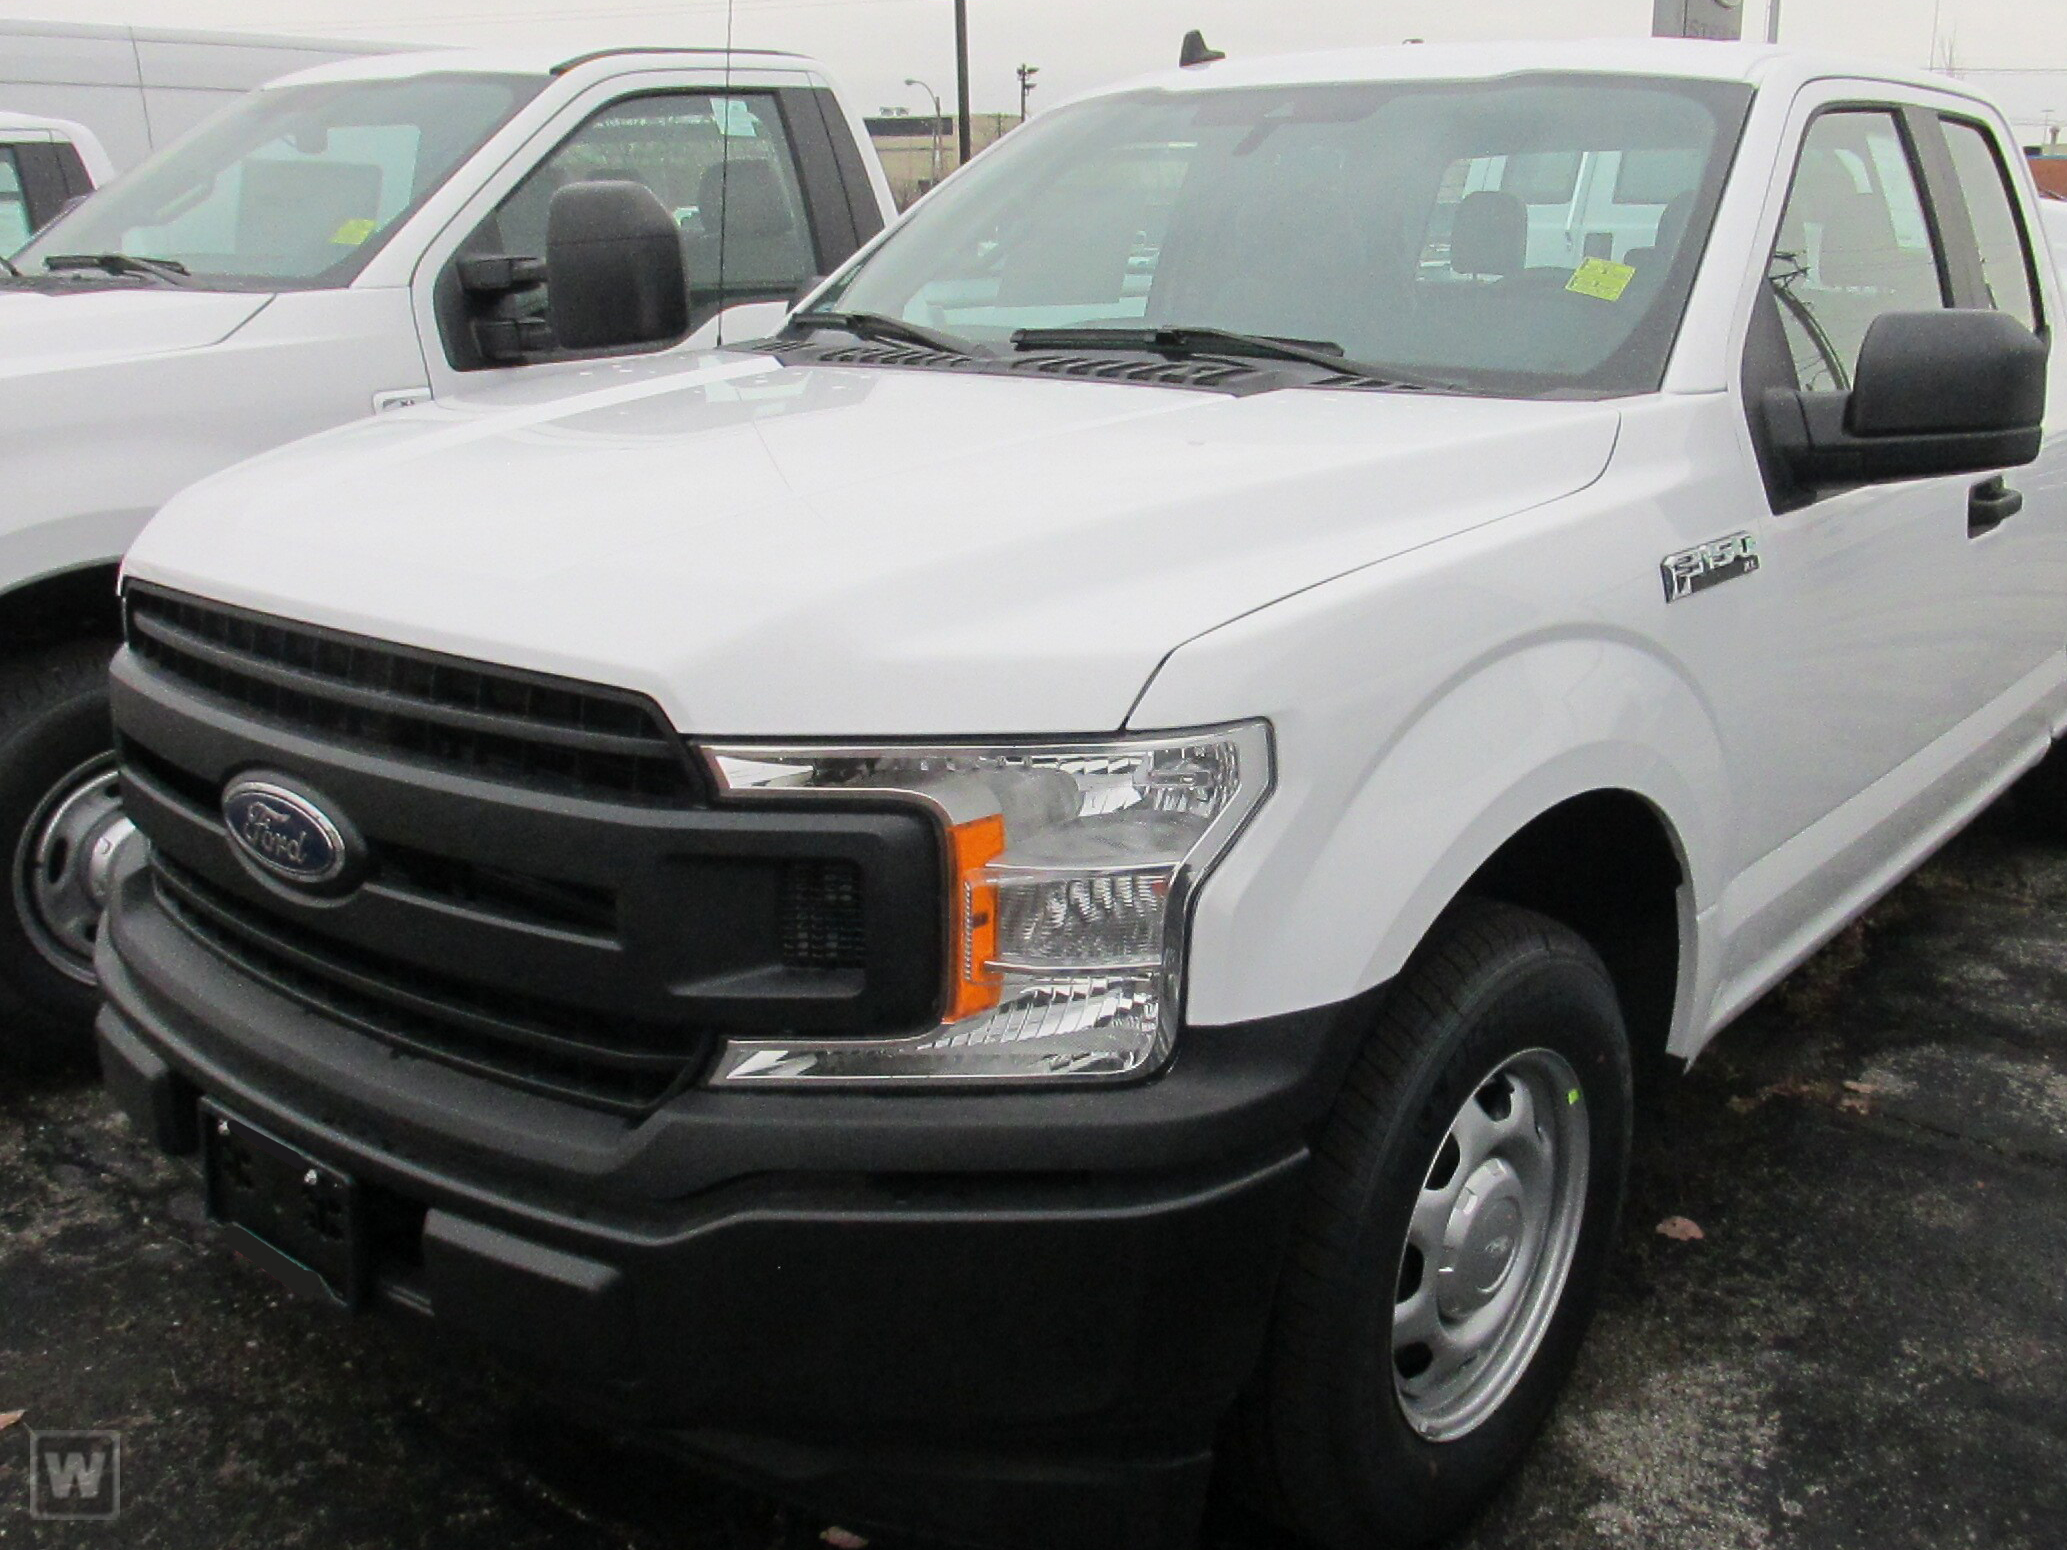 2020 F-150 Super Cab 4x4, Pickup #2133 - photo 1